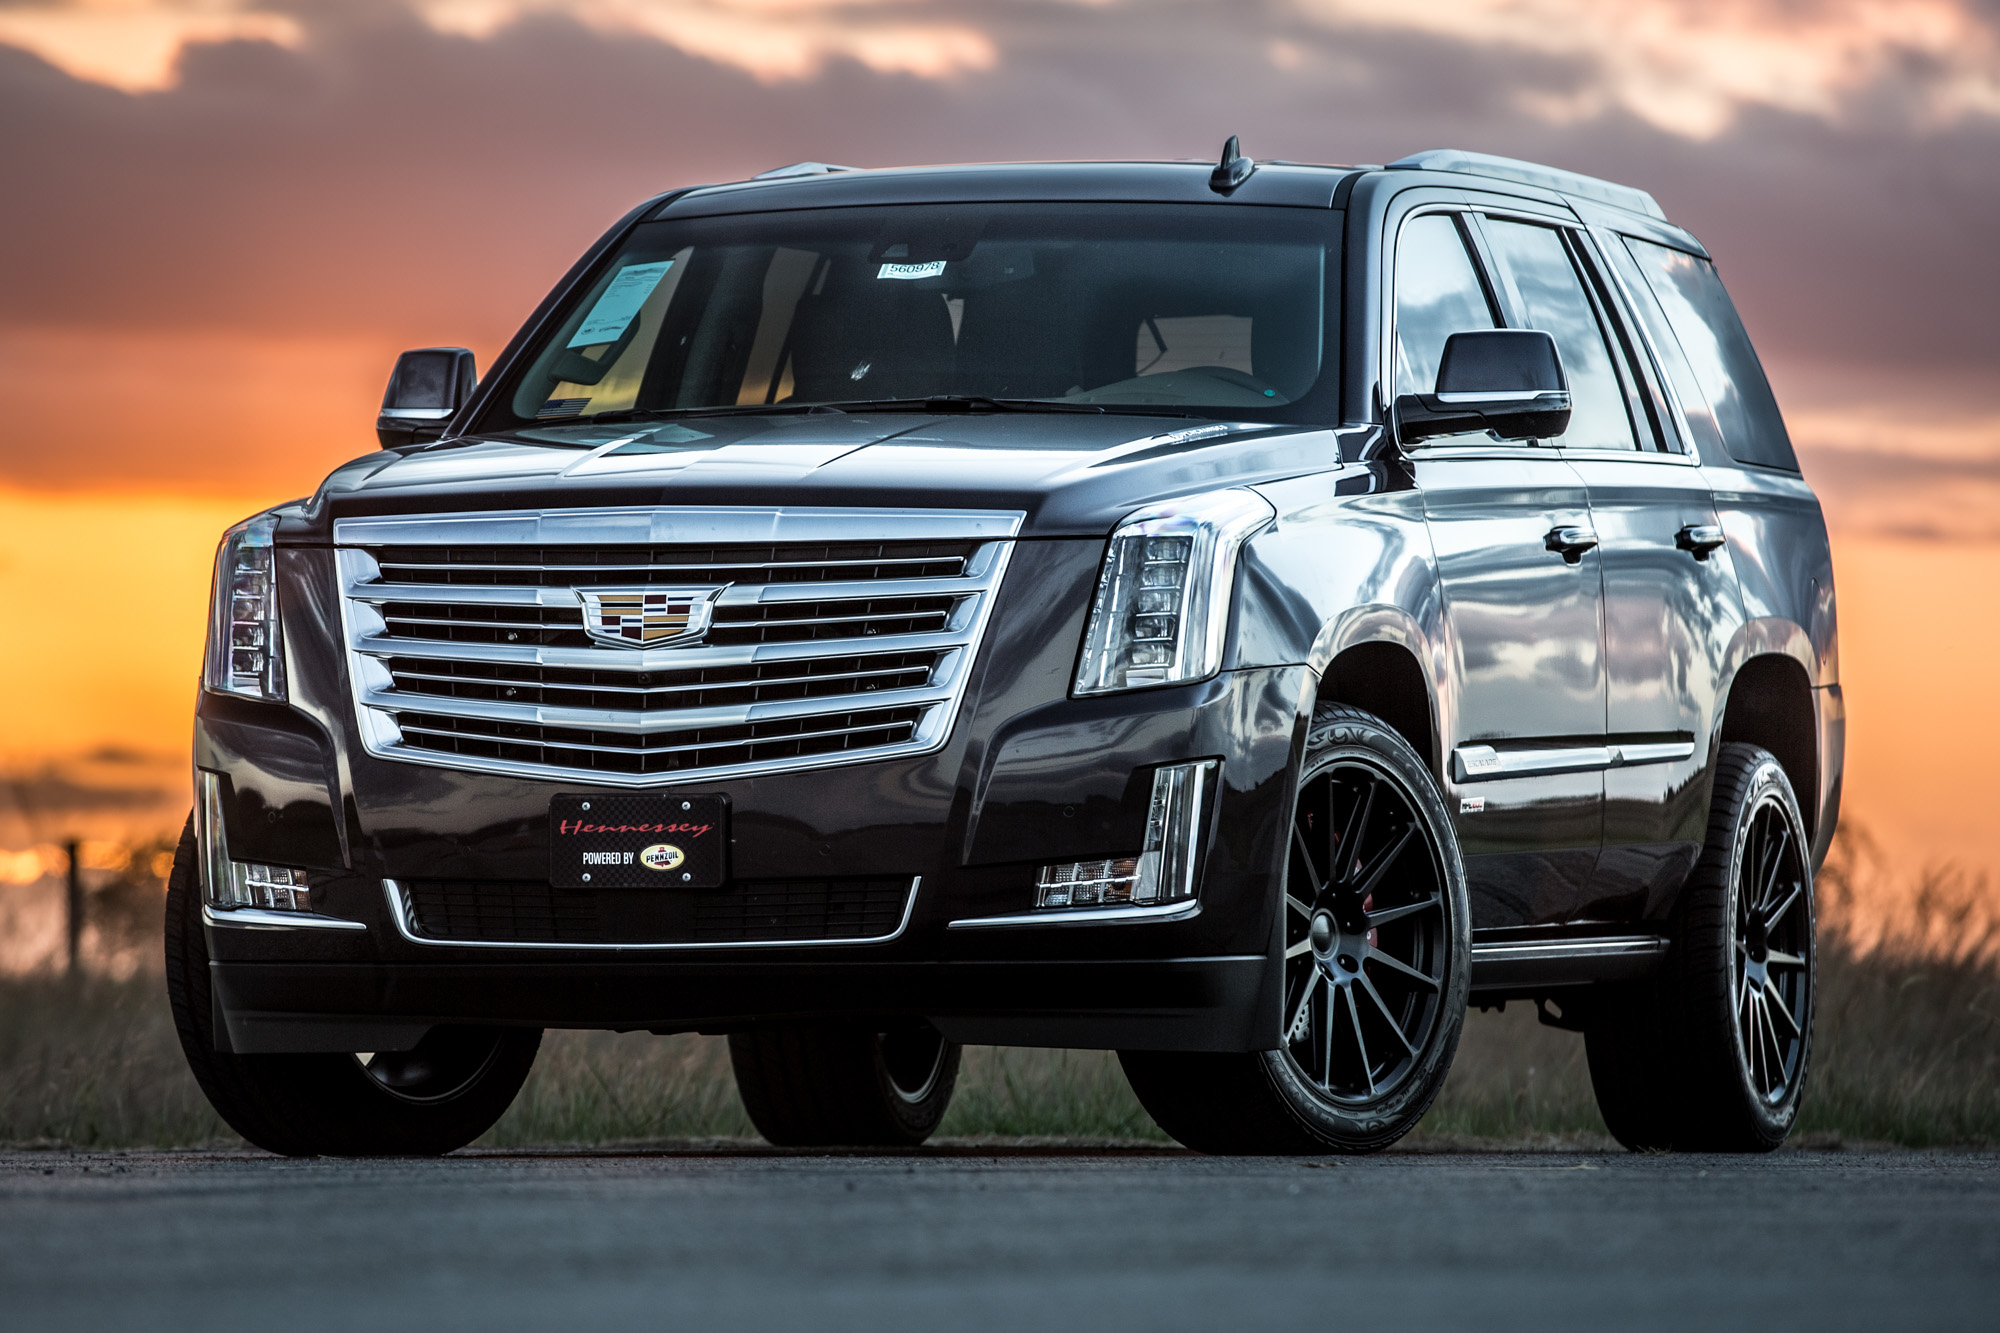 HPE800-Escalade-2016-Supercharged-8-crop-1.jpg